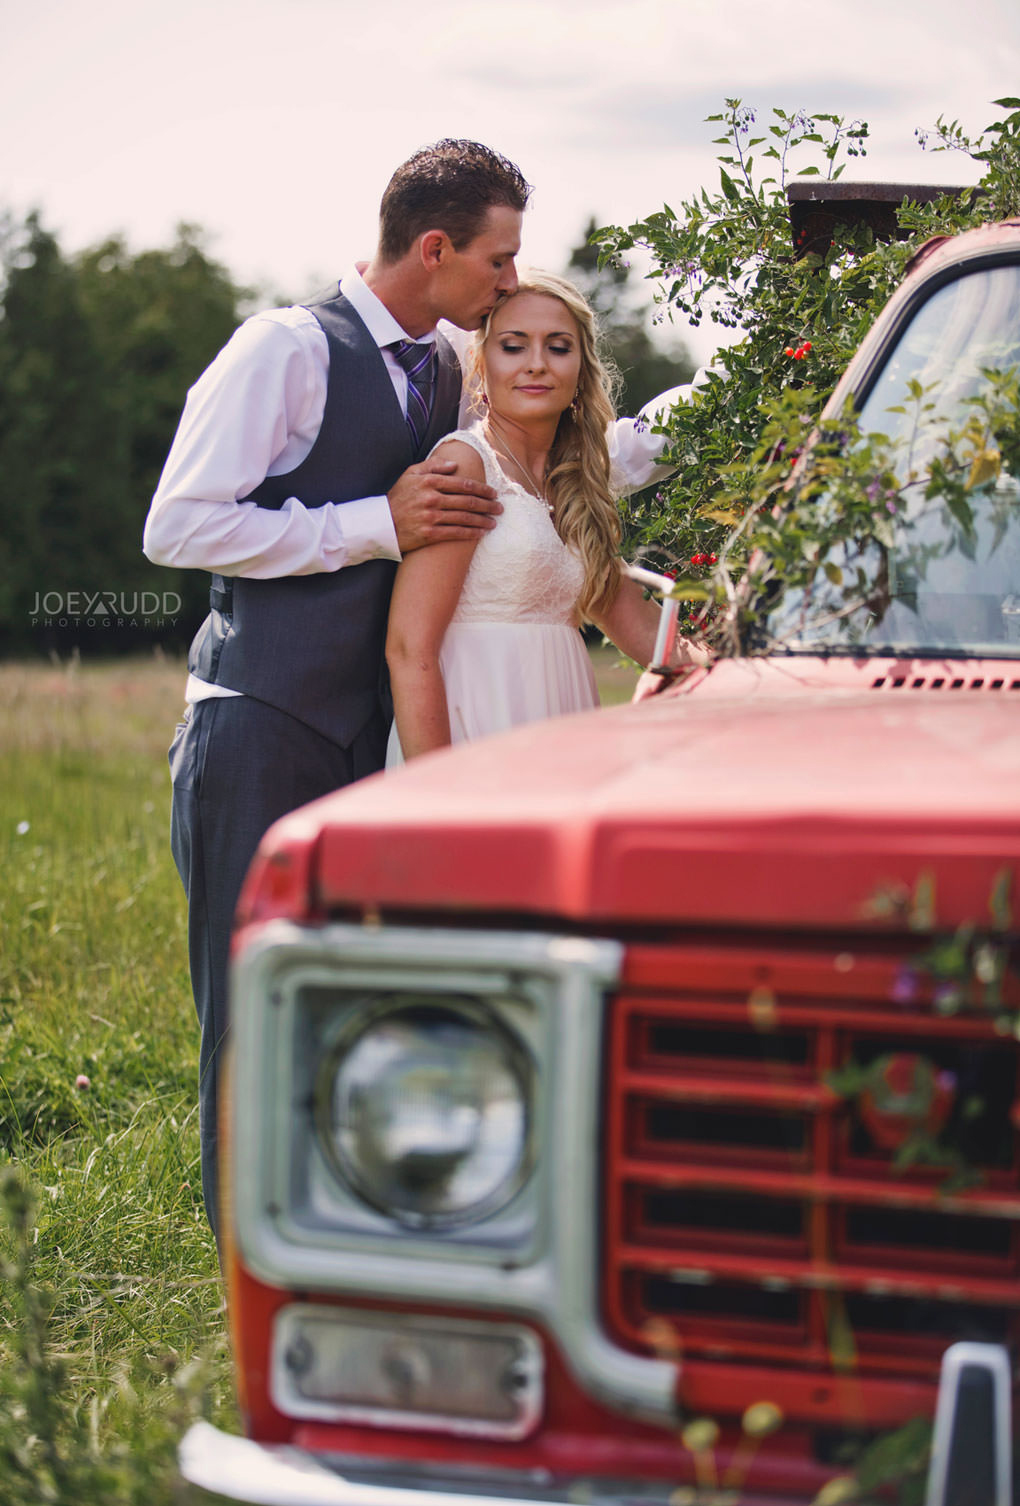 Ottawa Wedding Photography by Ottawa Wedding Photographer Joey Rudd Photography Elopement Carleton Place Smiths Falls Ontario Rustic Old Truck Pose